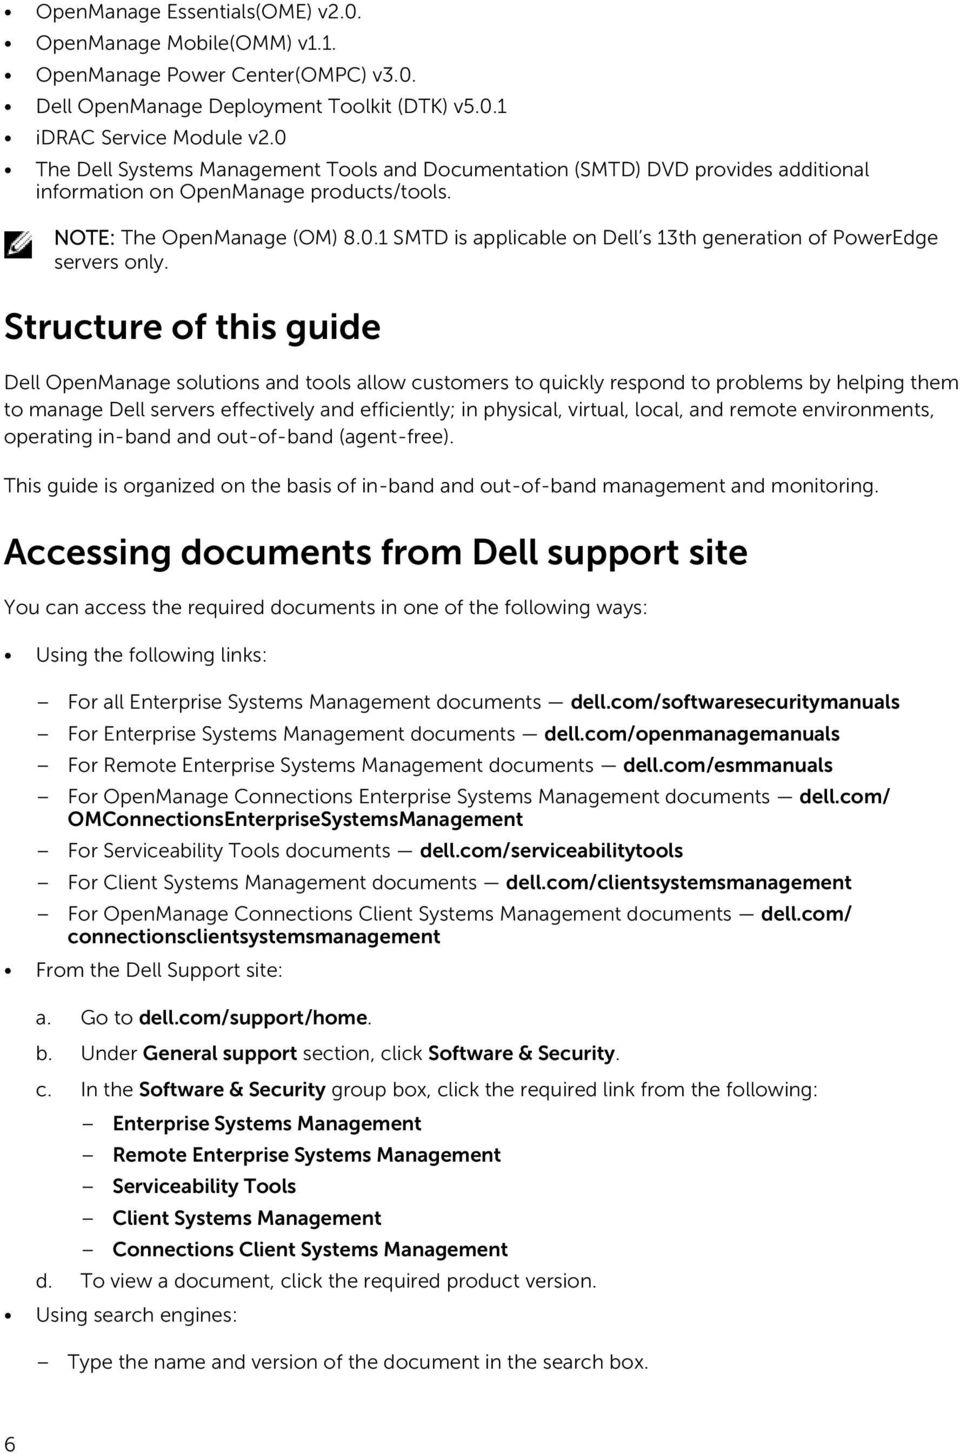 Dell Systems Management OpenManage Software Support Matrix